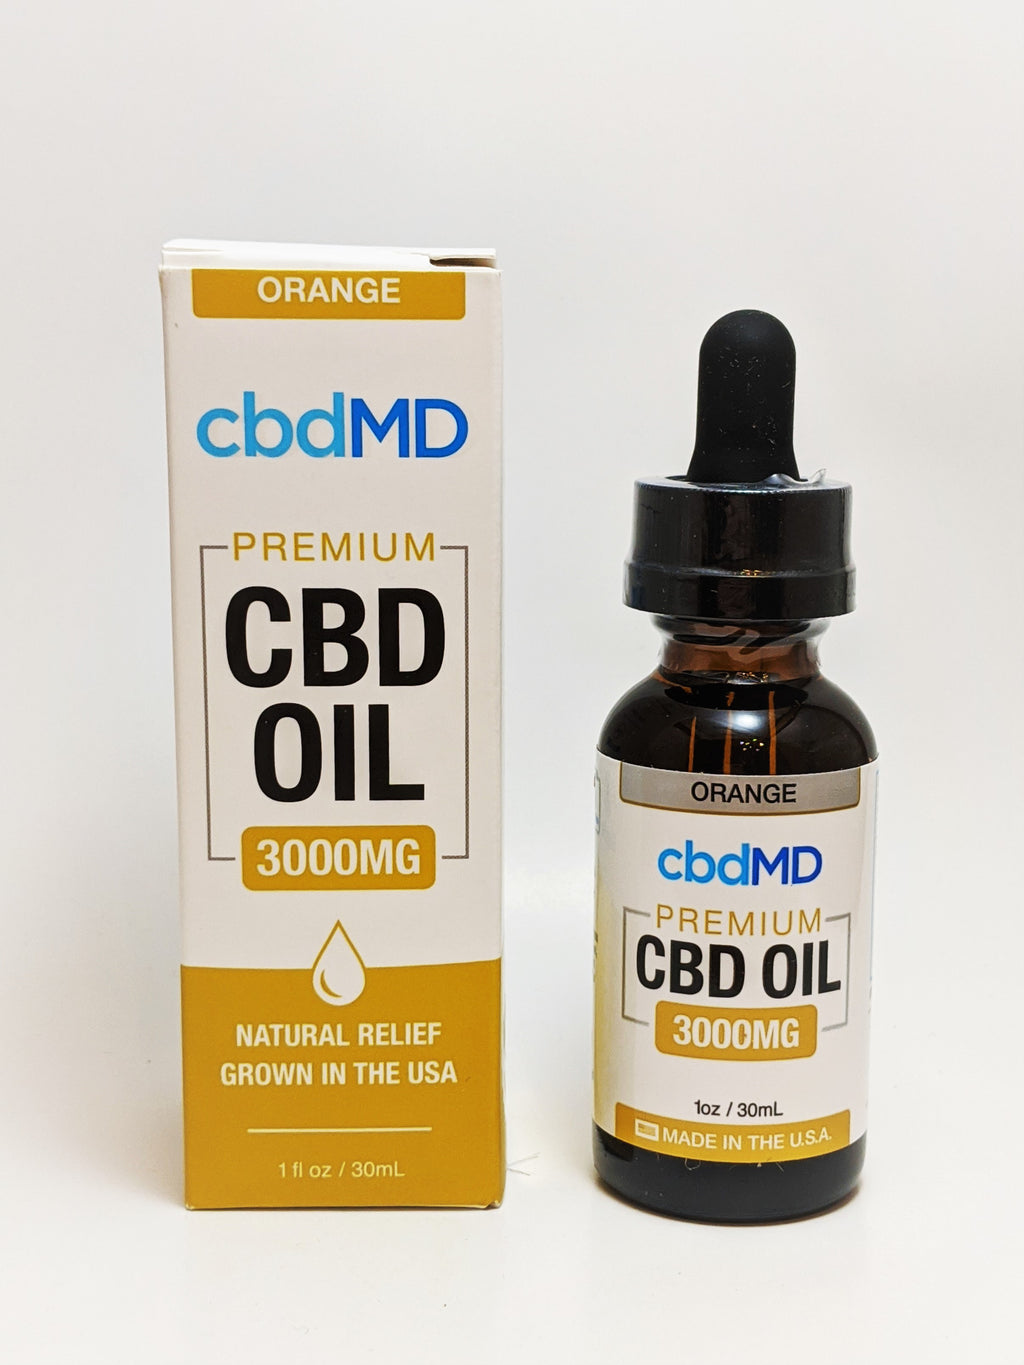 cbdMD 3000 mg Oil - Orange Flavor - CBD Central